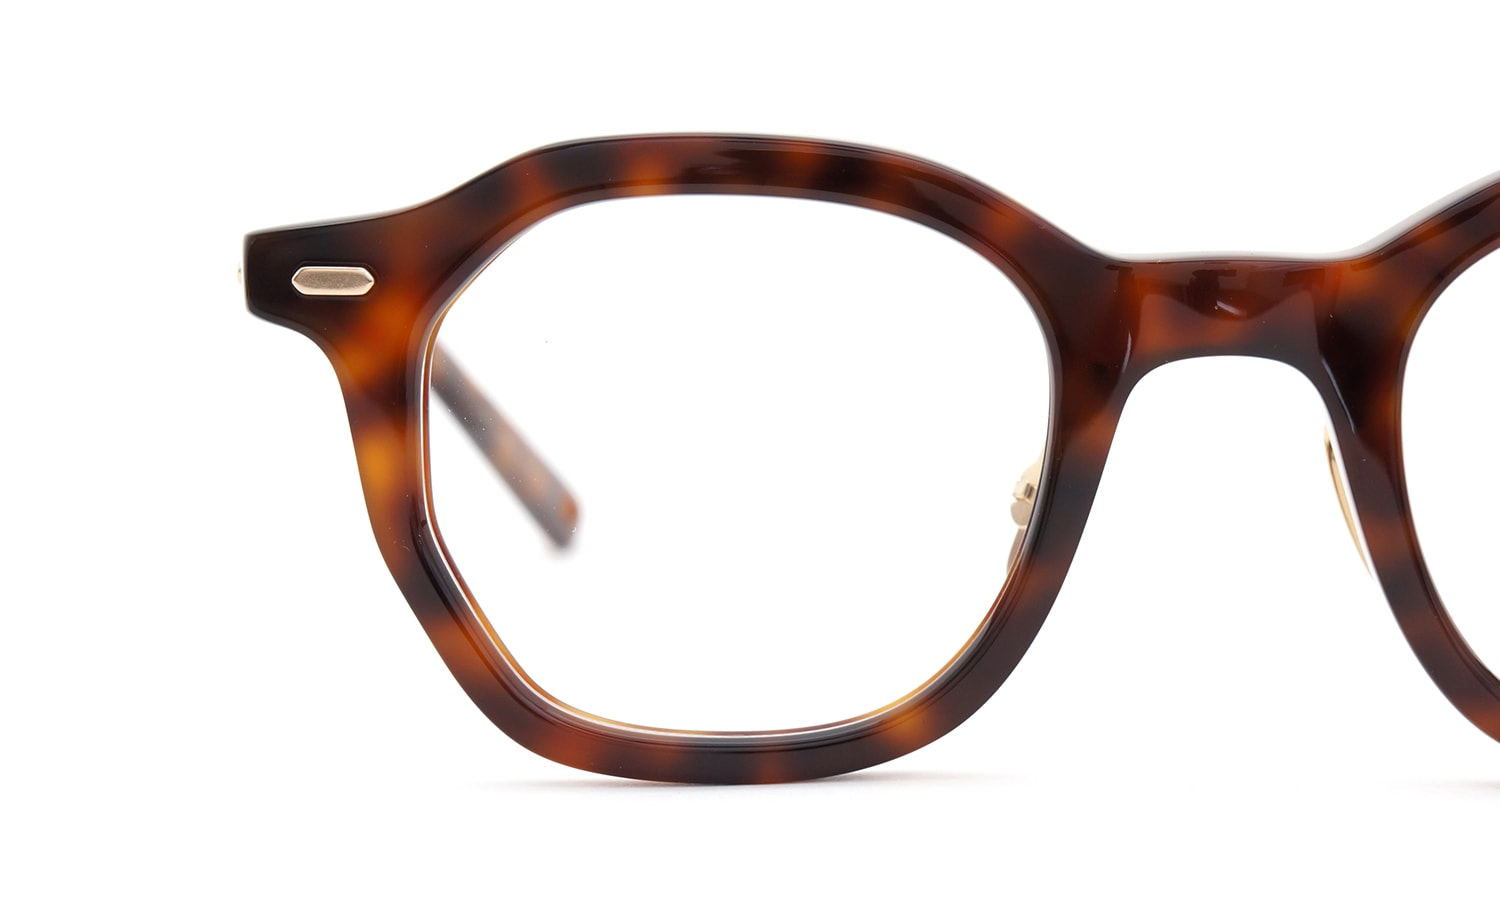 OG × OLIVER GOLDSMITH Re:BETSY 45 リ:ベッツィ 15